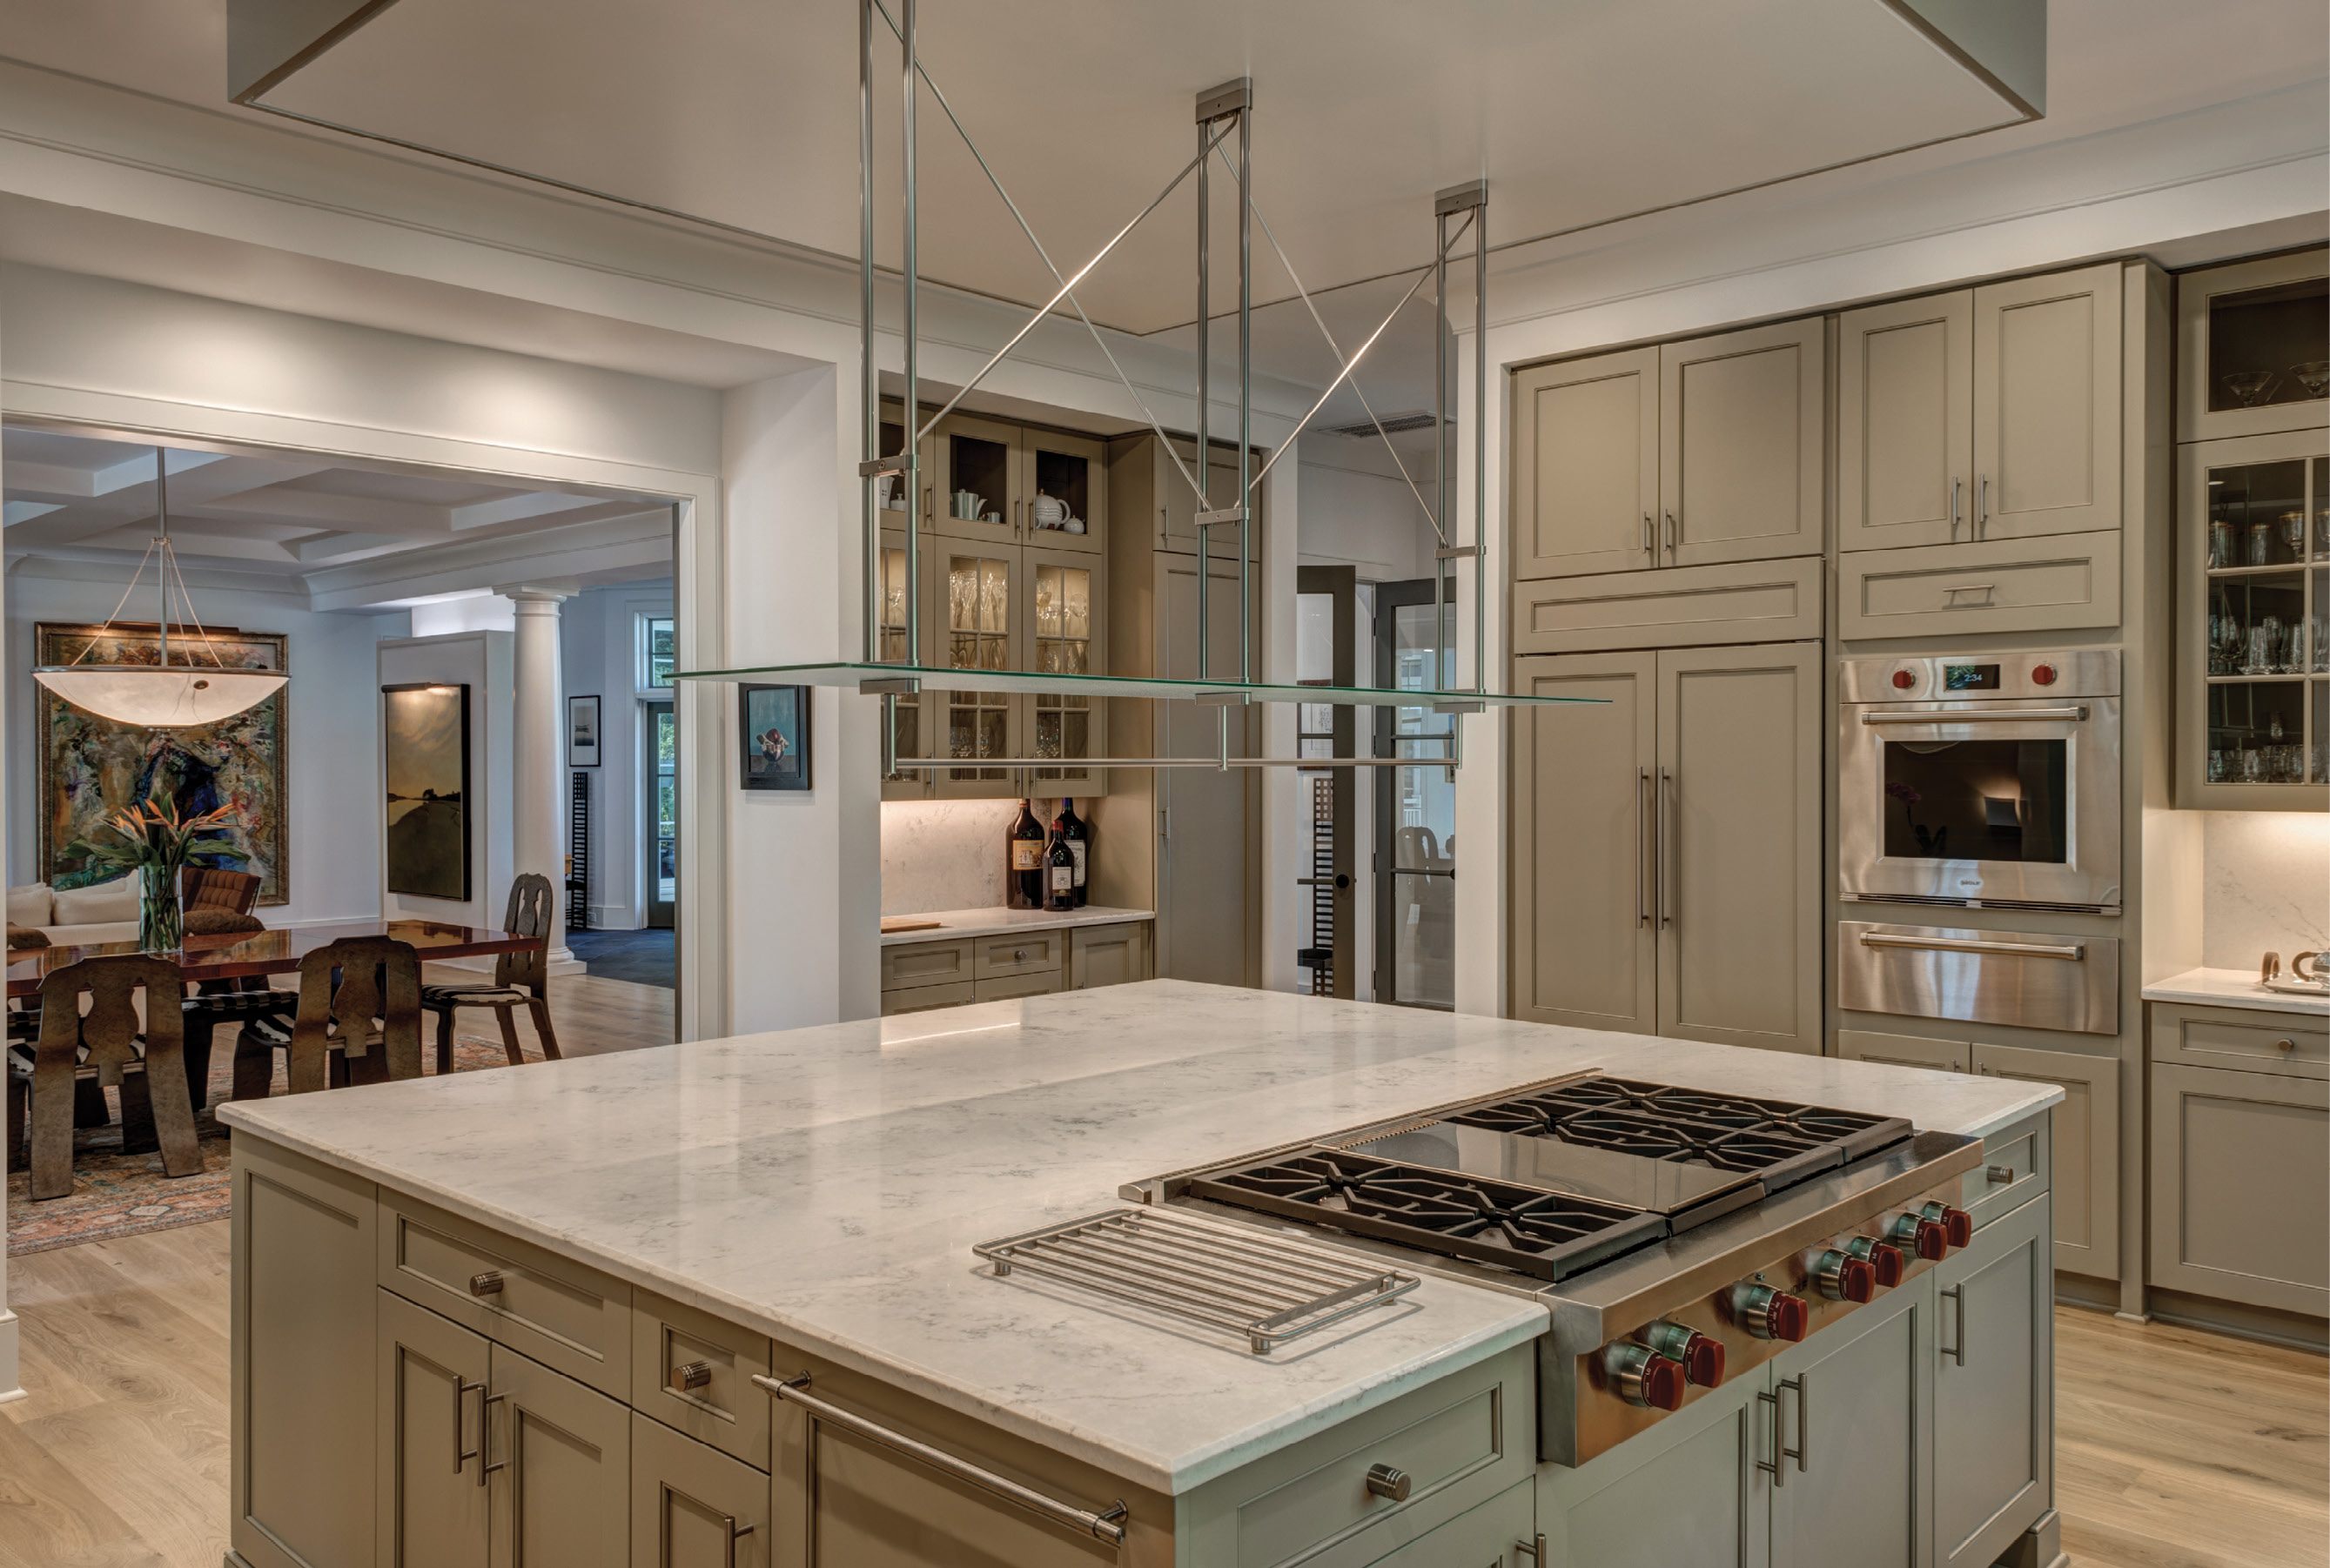 "COOKING LIGHT: Abundant natural light is the main ingredient in the spacious kitchen, where an oversized island with quartz countertops offers a central gathering space. ""We entertain a lot,"" says the wife, who loves to cook but gives her husband props for ""approaching chef status"" with his culinary expertise."